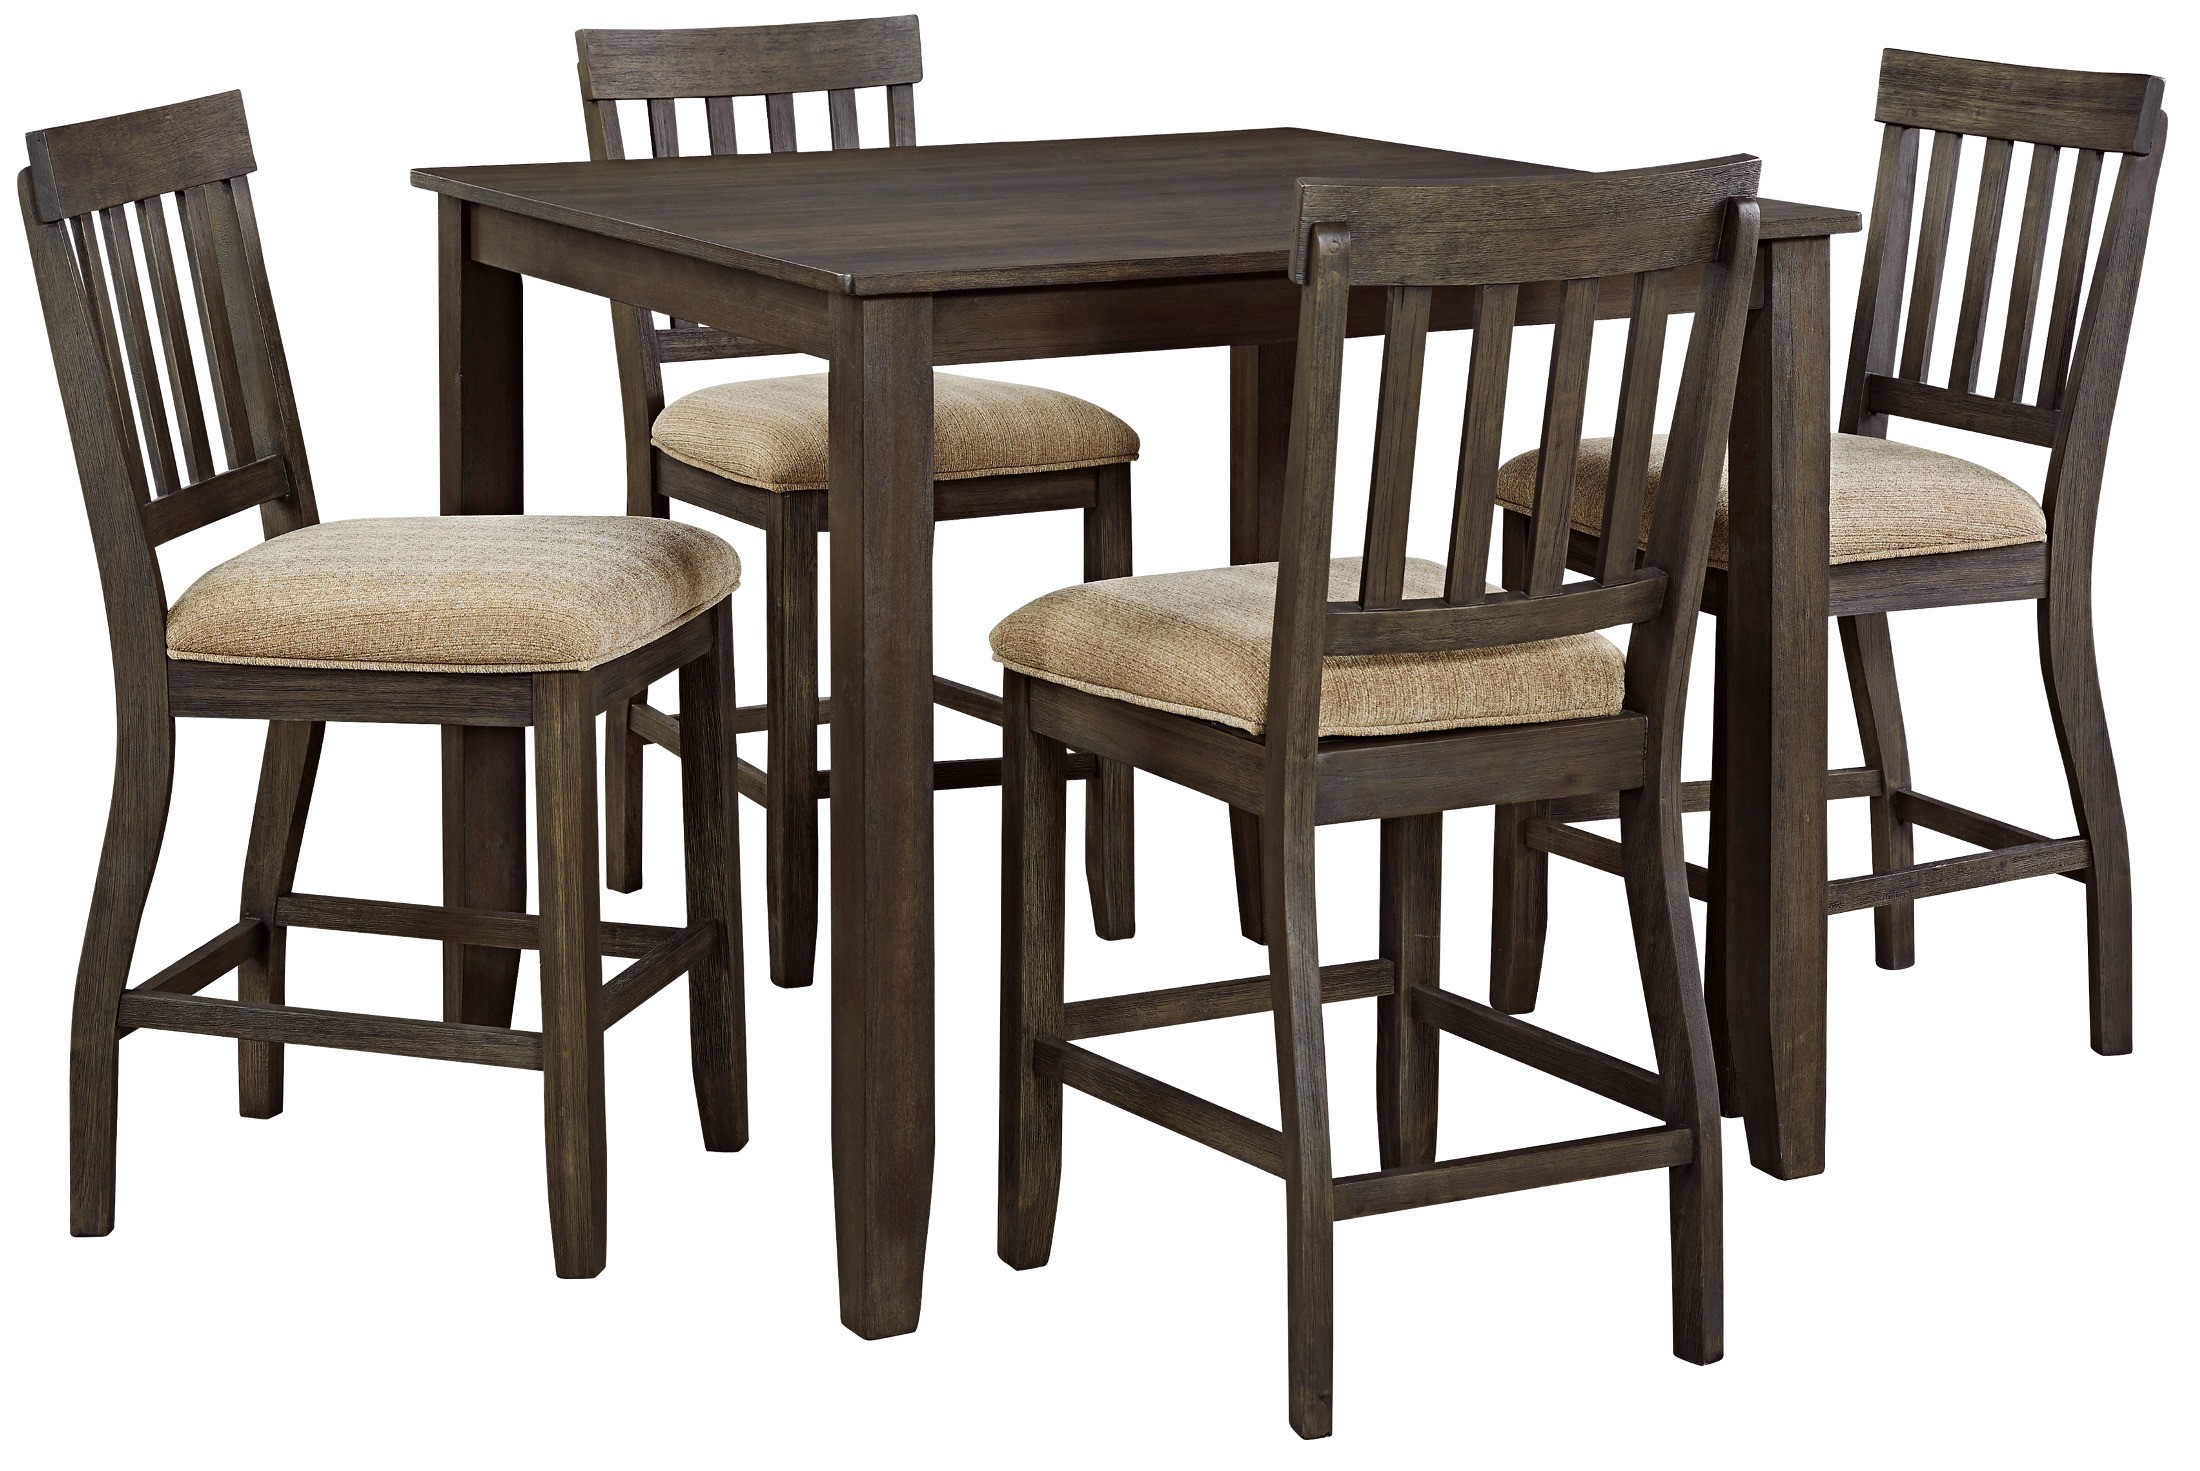 Counter Height Dining Room Sets Of Dresbar Grayish Brown Square Counter Height Dining Room